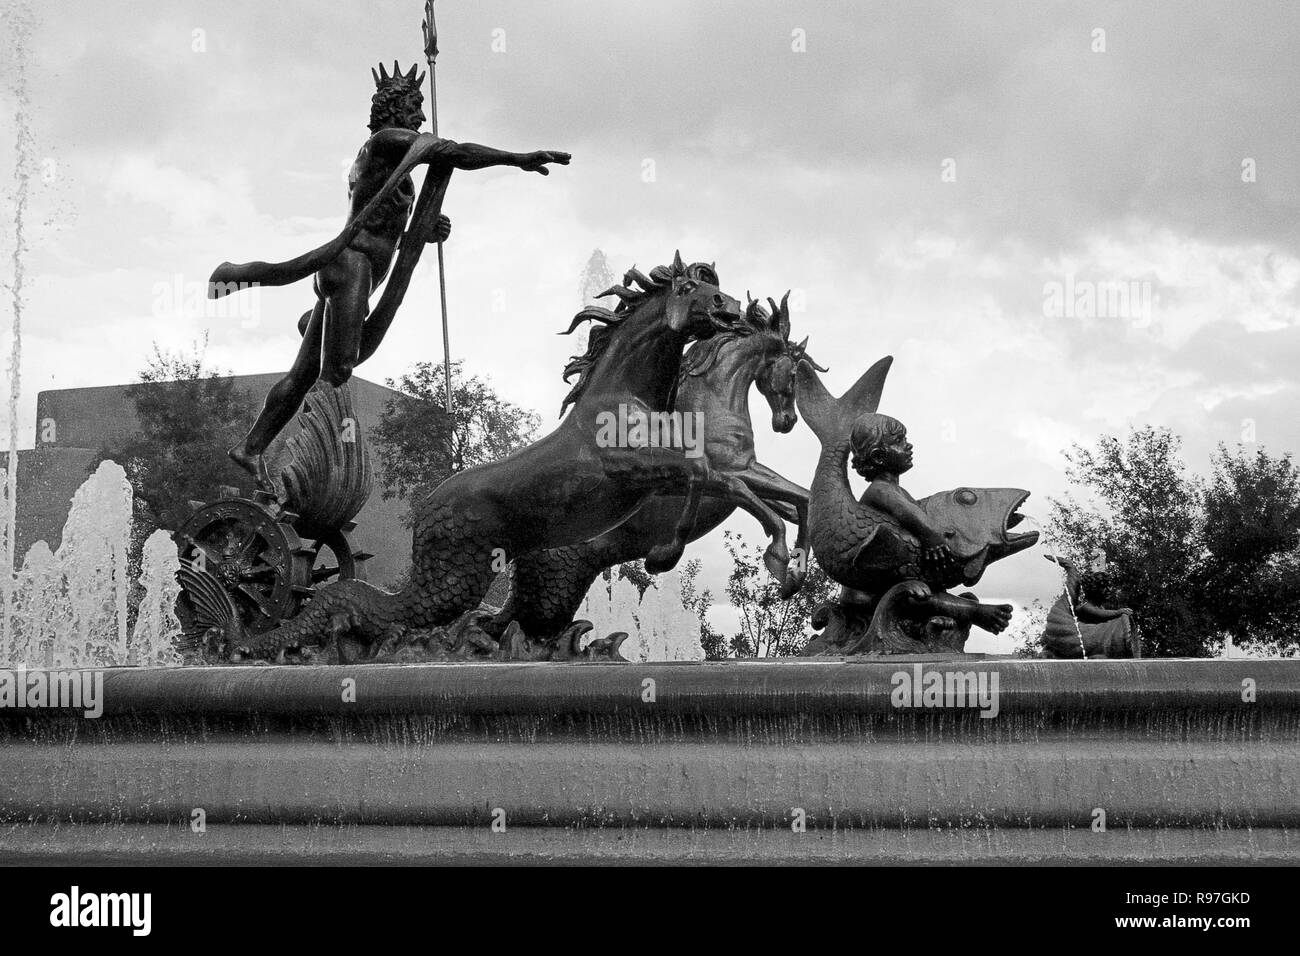 MONTERREY, NL/MEXICO - NOV 10, 2003: Neptuno fountain at the Macroplaza Stock Photo